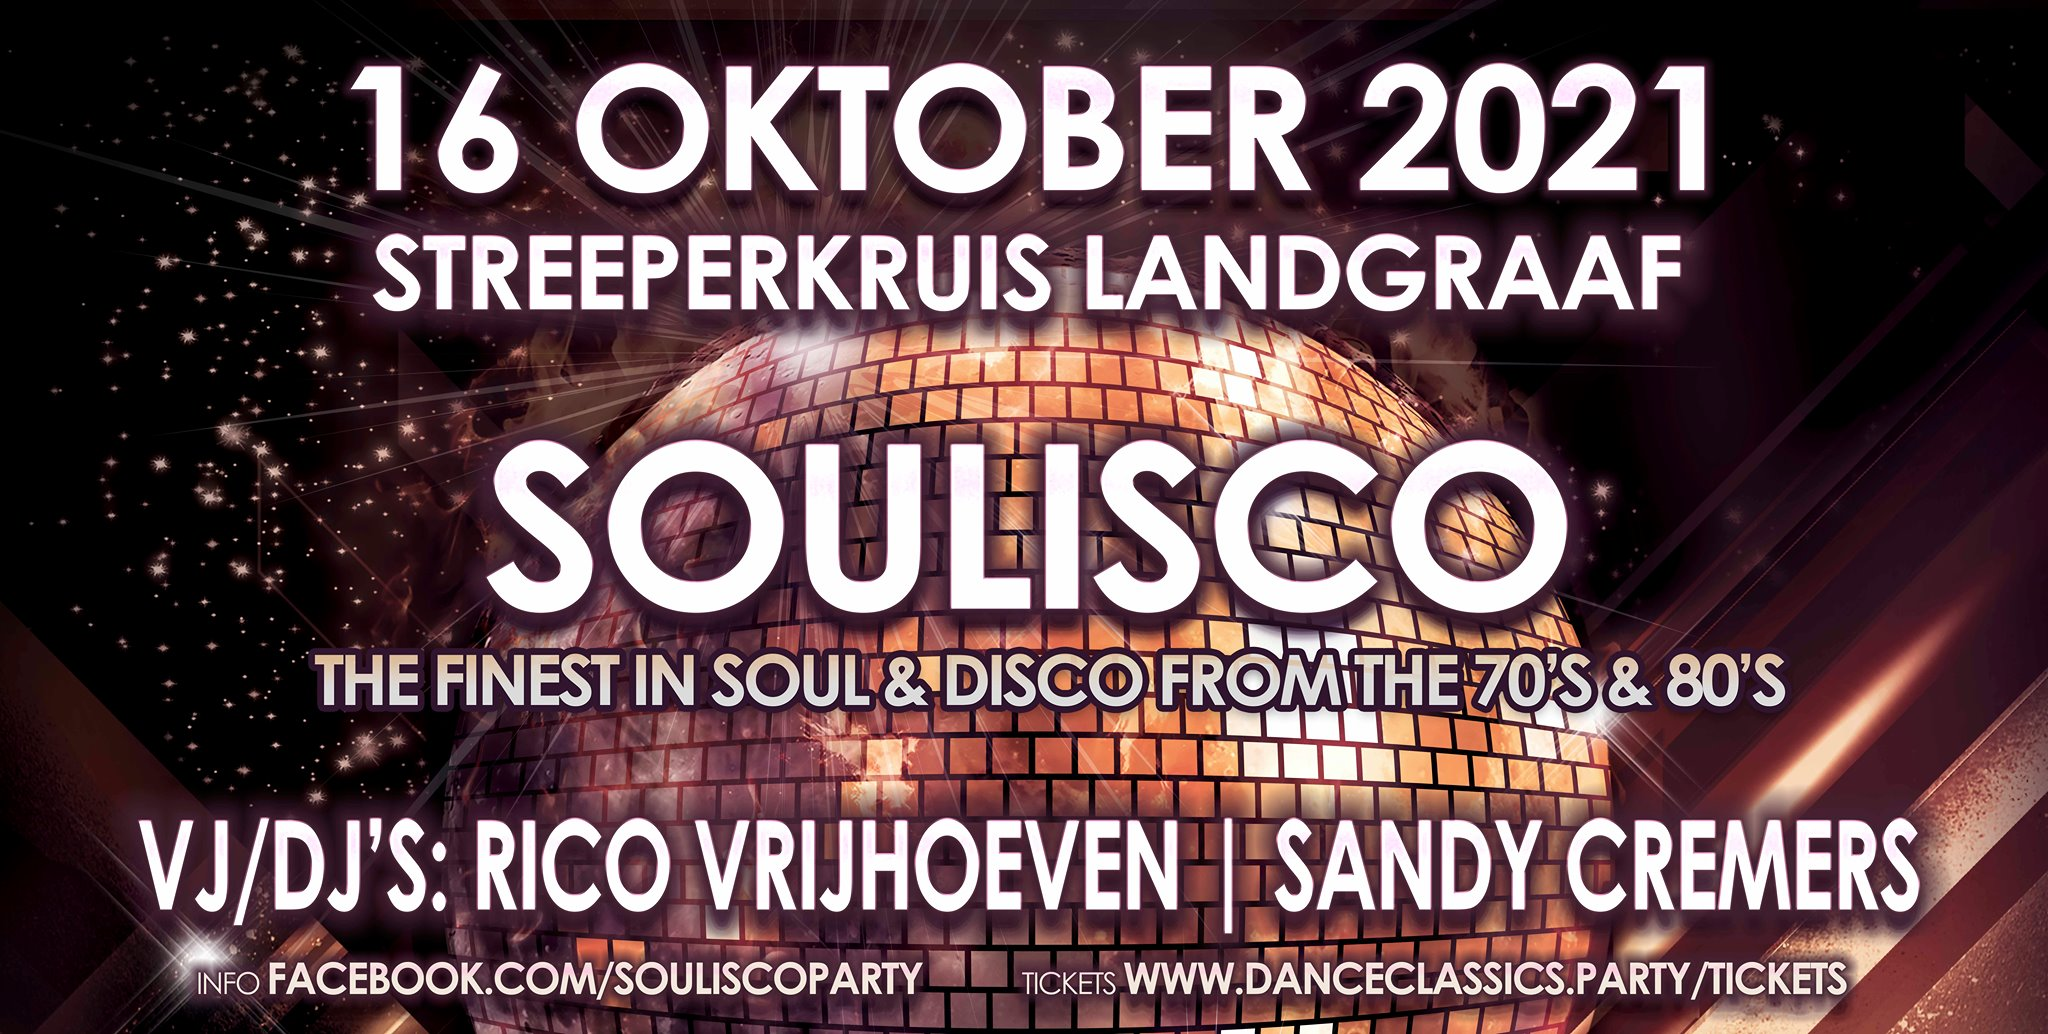 Soulisco party